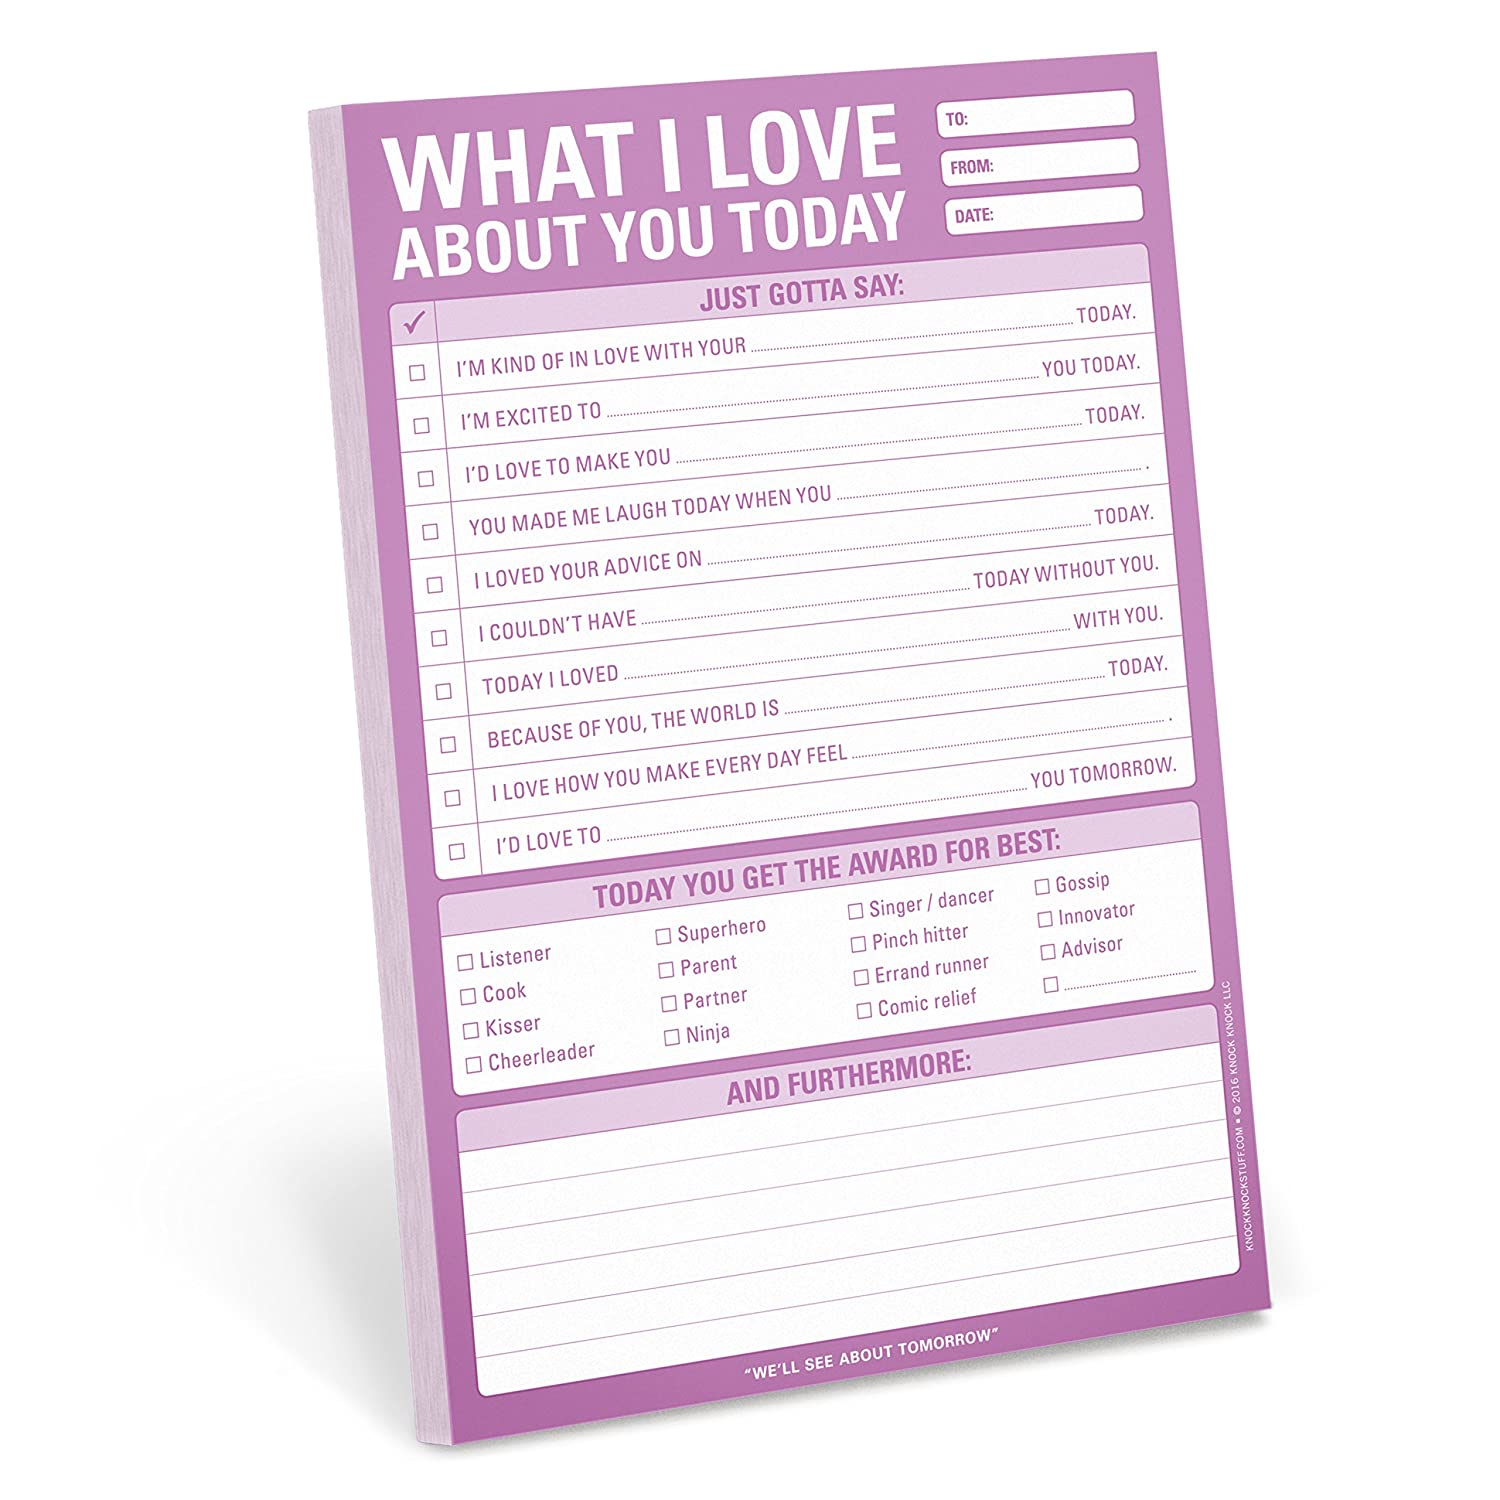 What I love about you today note pad